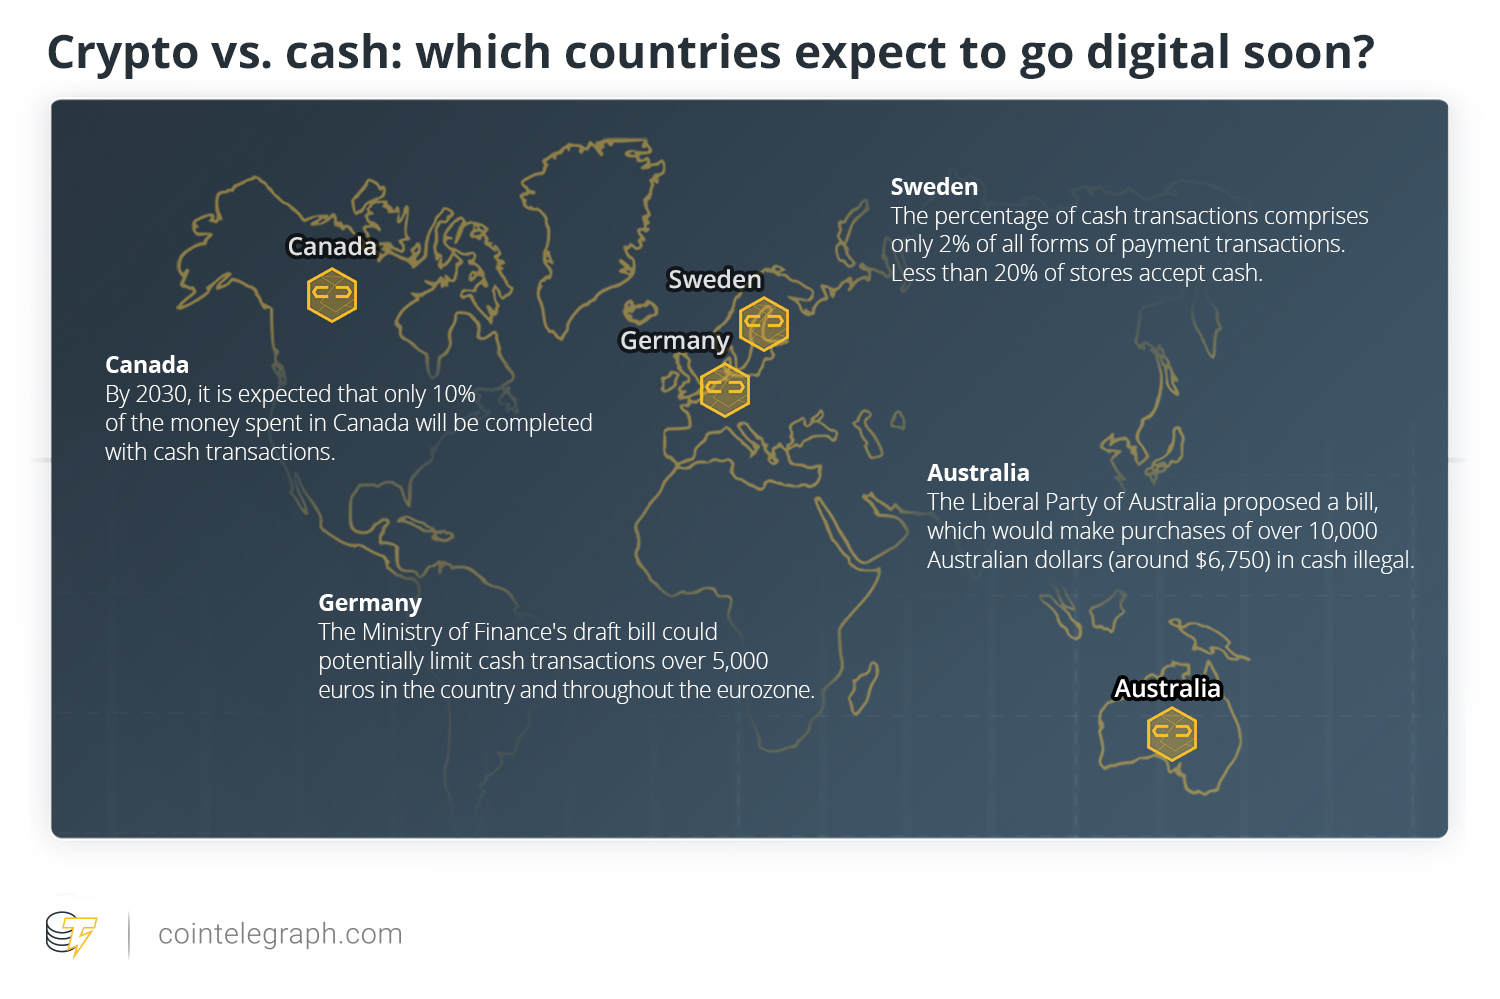 Crypto Vs  Cash: Which Countries Expect to Go Digital Soon?